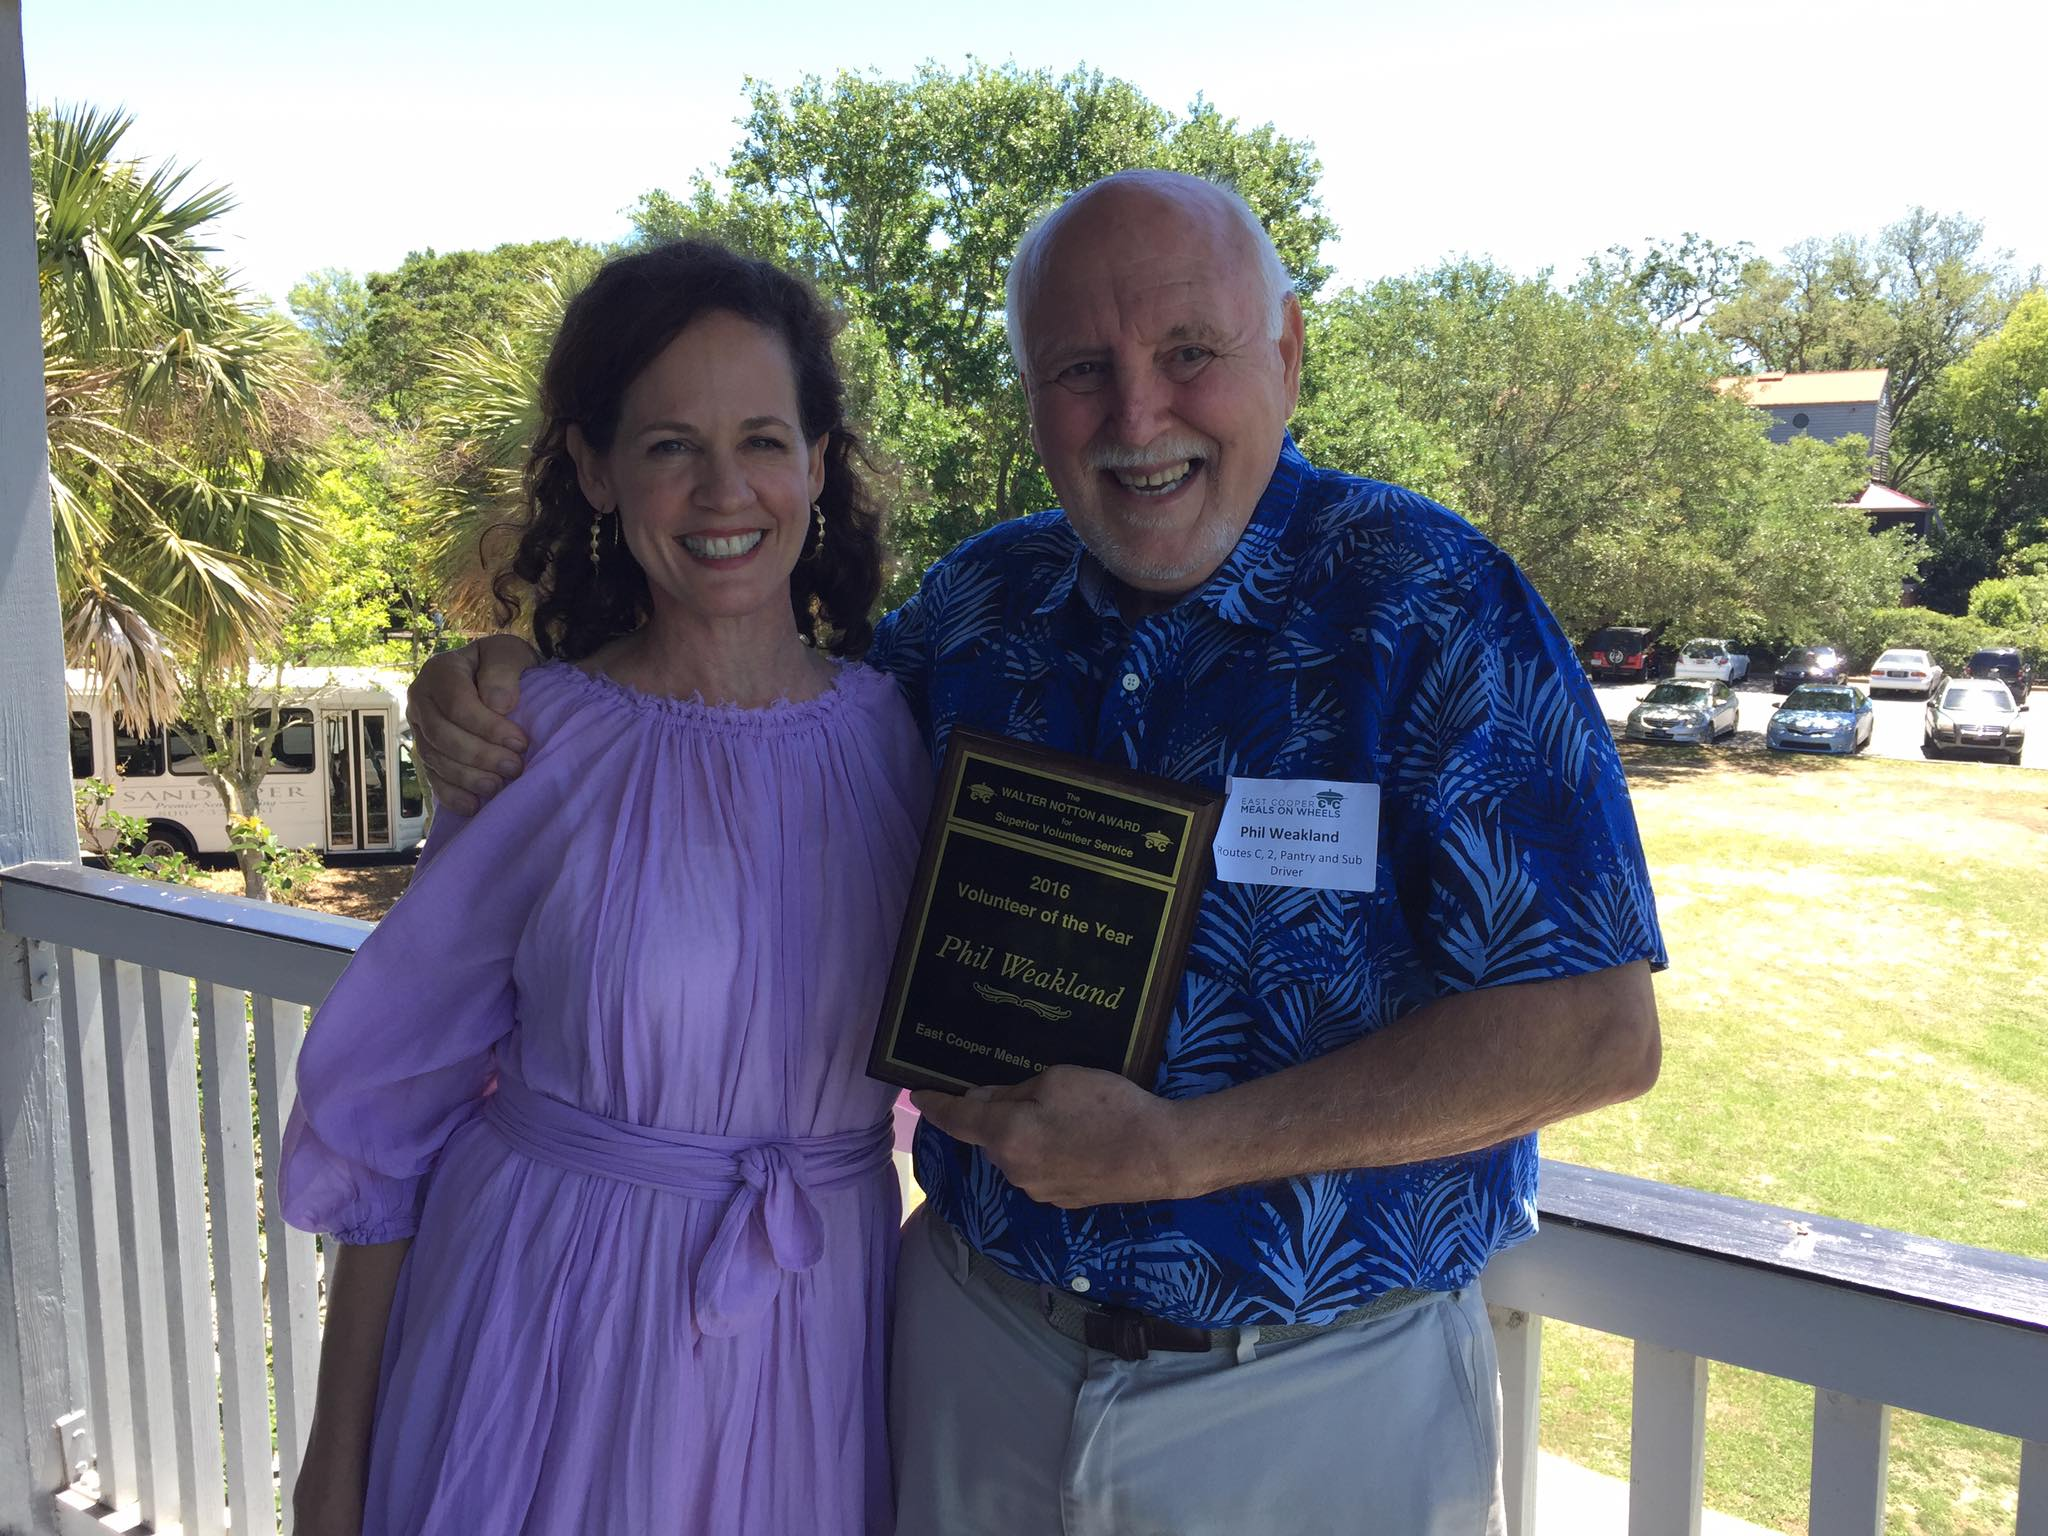 Volunteer Manager Kelley Chapman with Phil Weakland, Volunteer of the Year 2016